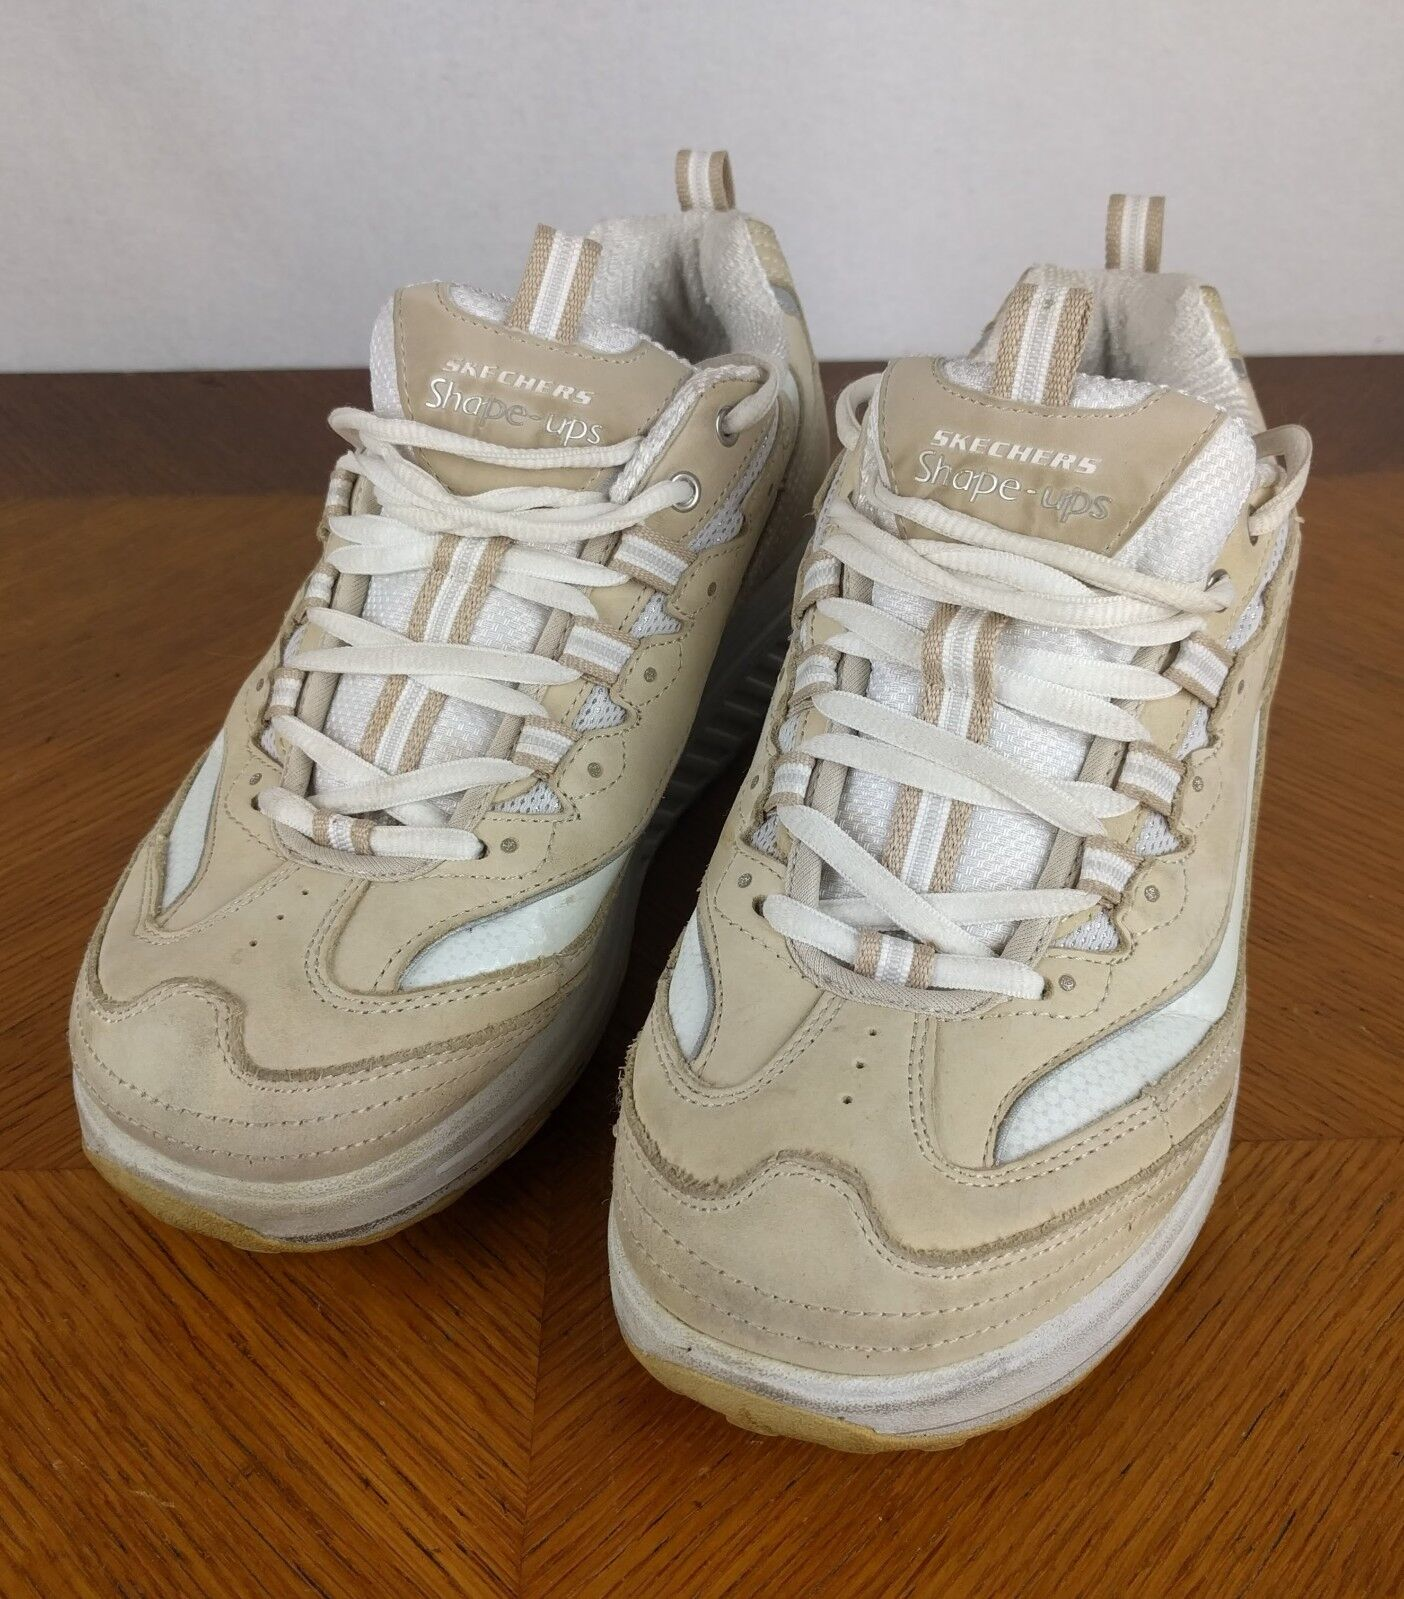 Skechers Tan Shape Ups shoes Size Women's 8.5 Walking Athletic Sneakers Beige